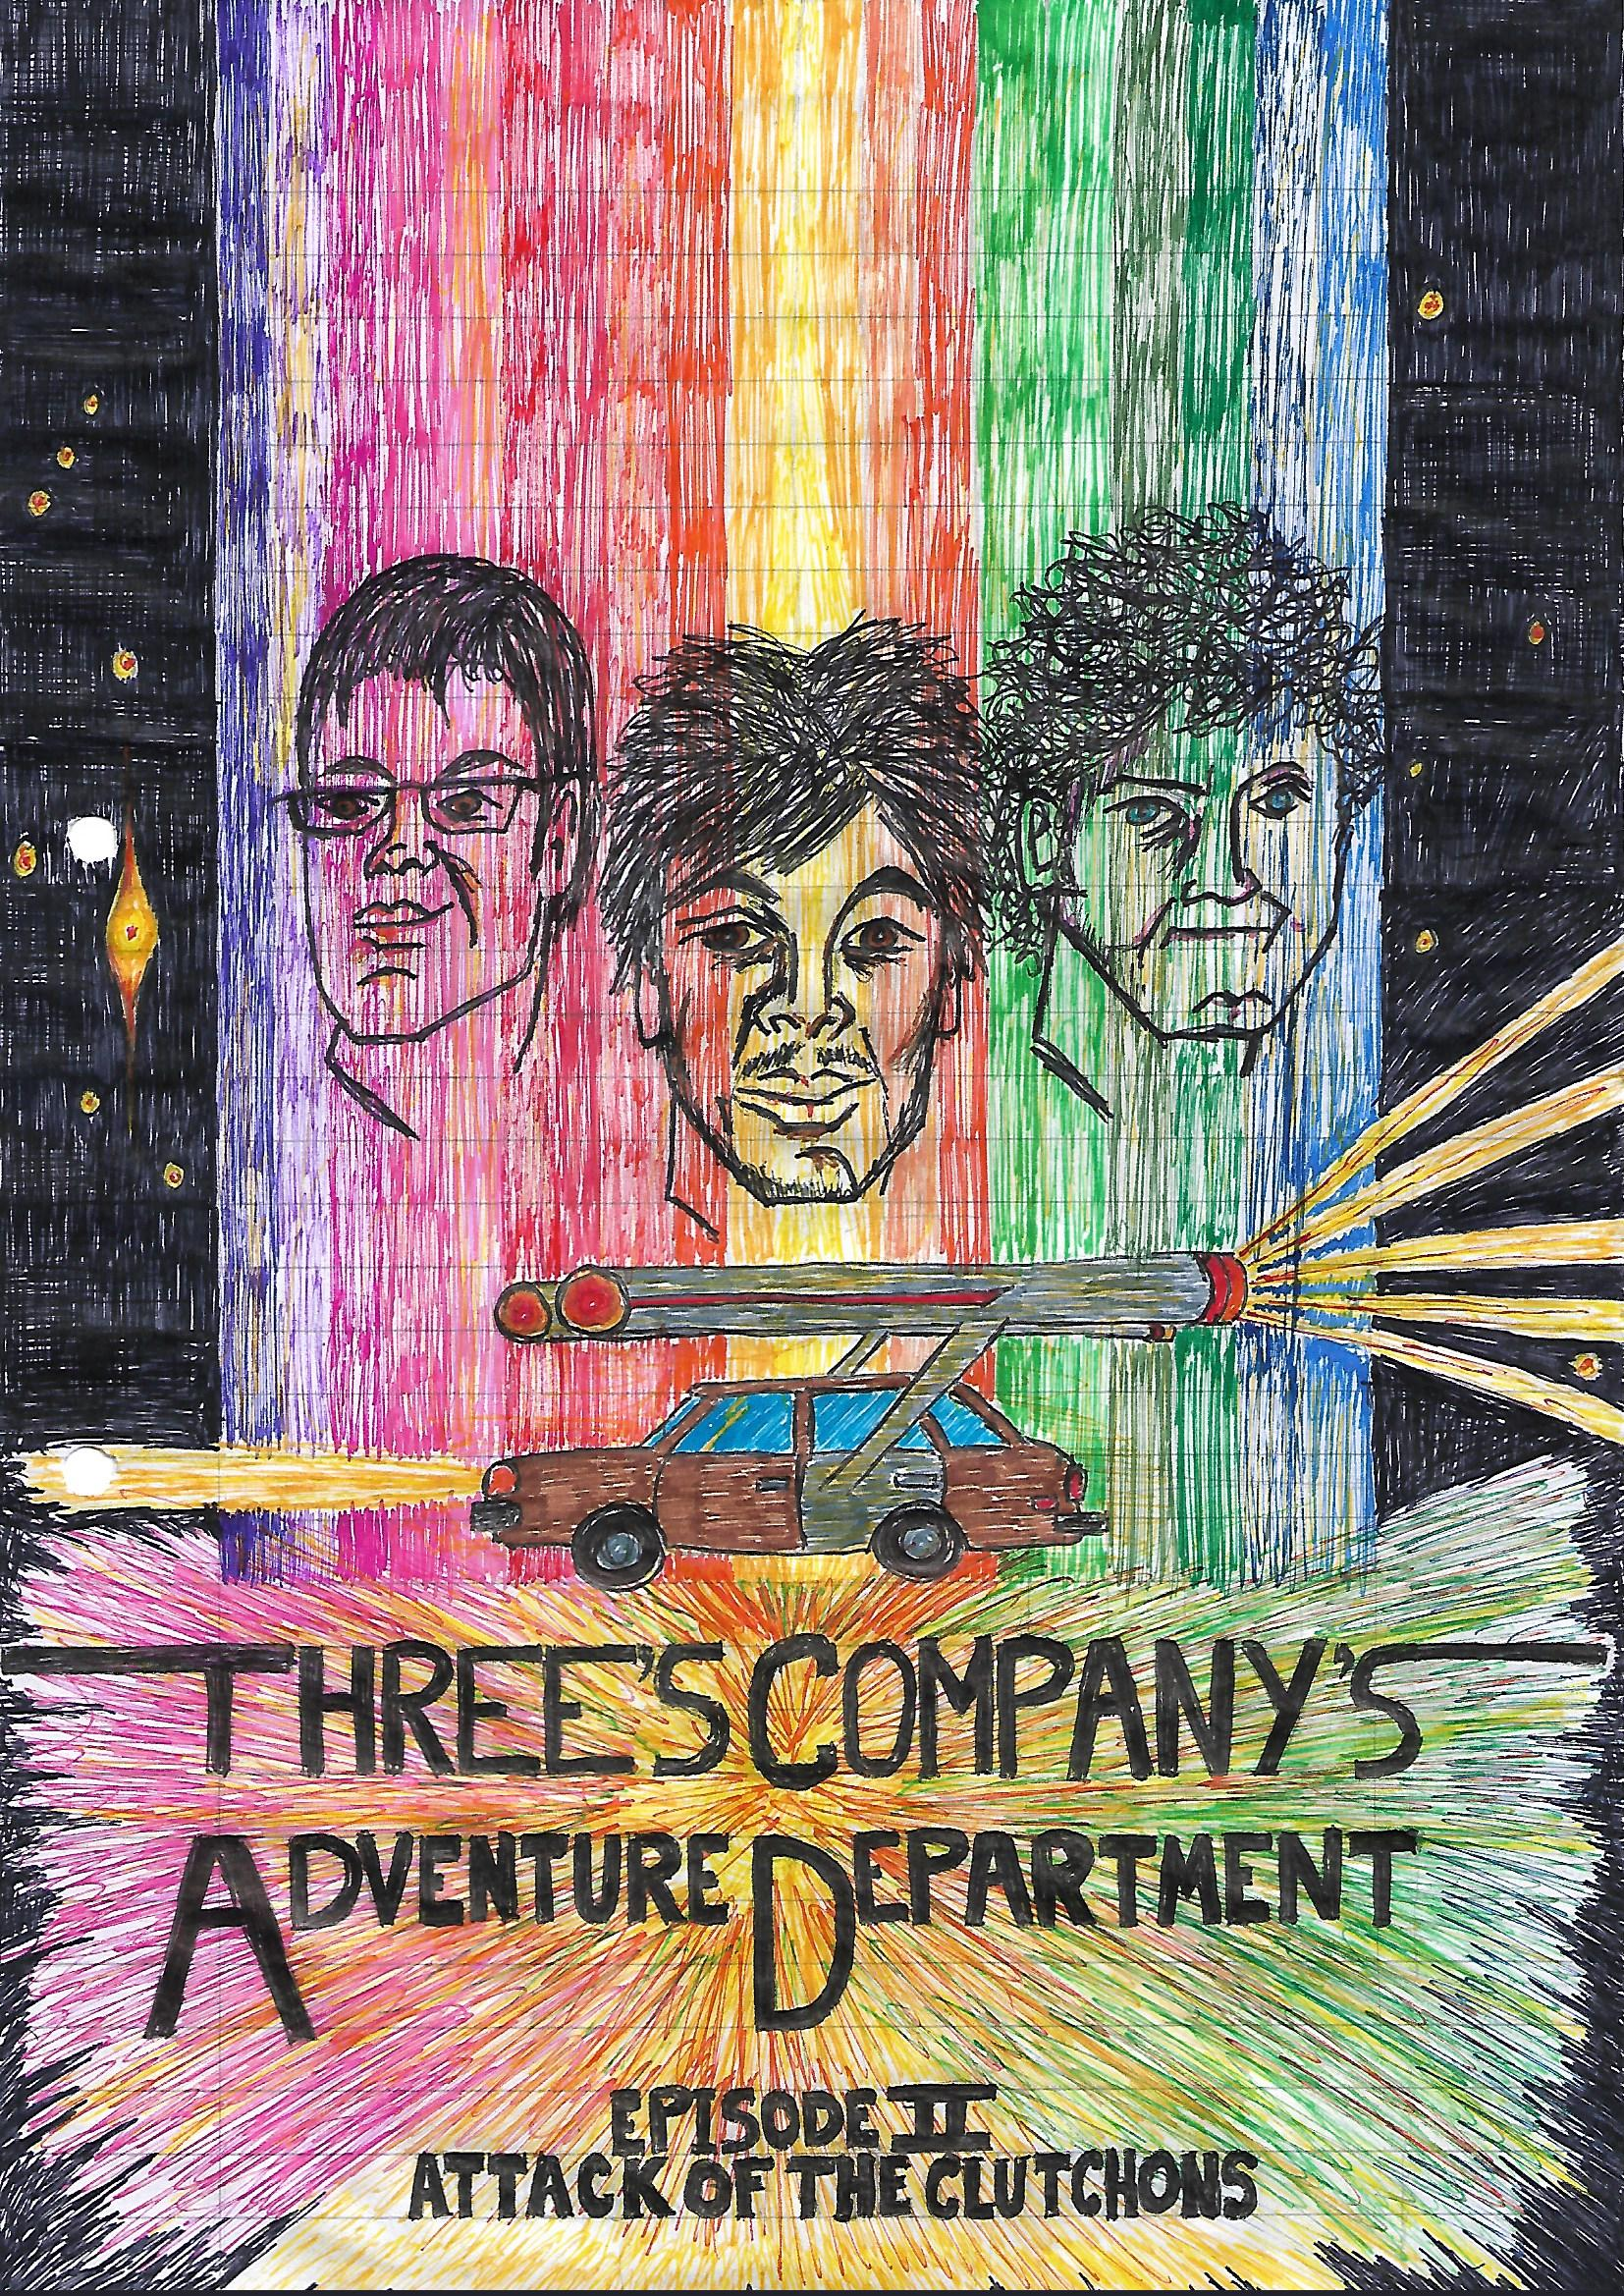 Three's Company Adventure Department Episode 2: Attack Of The Clutchons Poster (by Michael Grady-Hall)